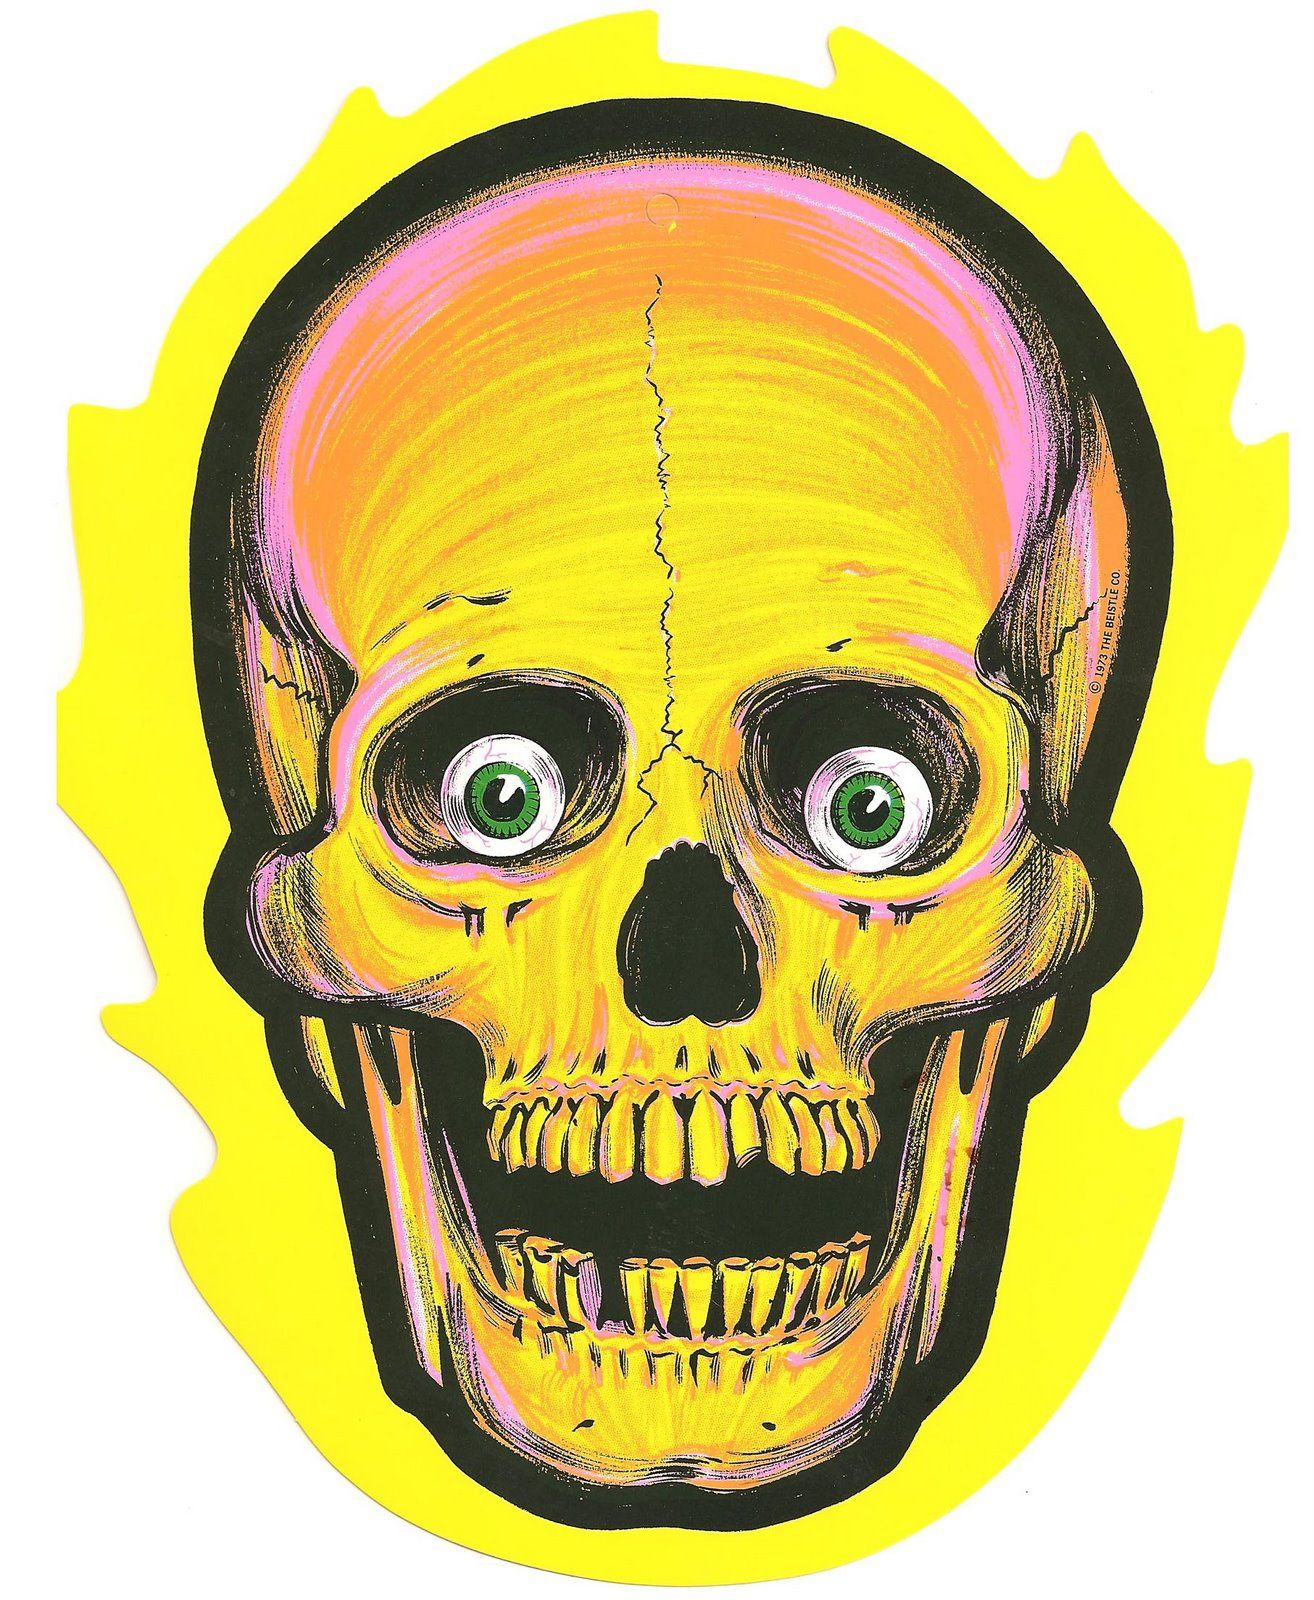 Halloween skull decorations - Find This Pin And More On Die Cut Decorations We Had This Halloween Skull